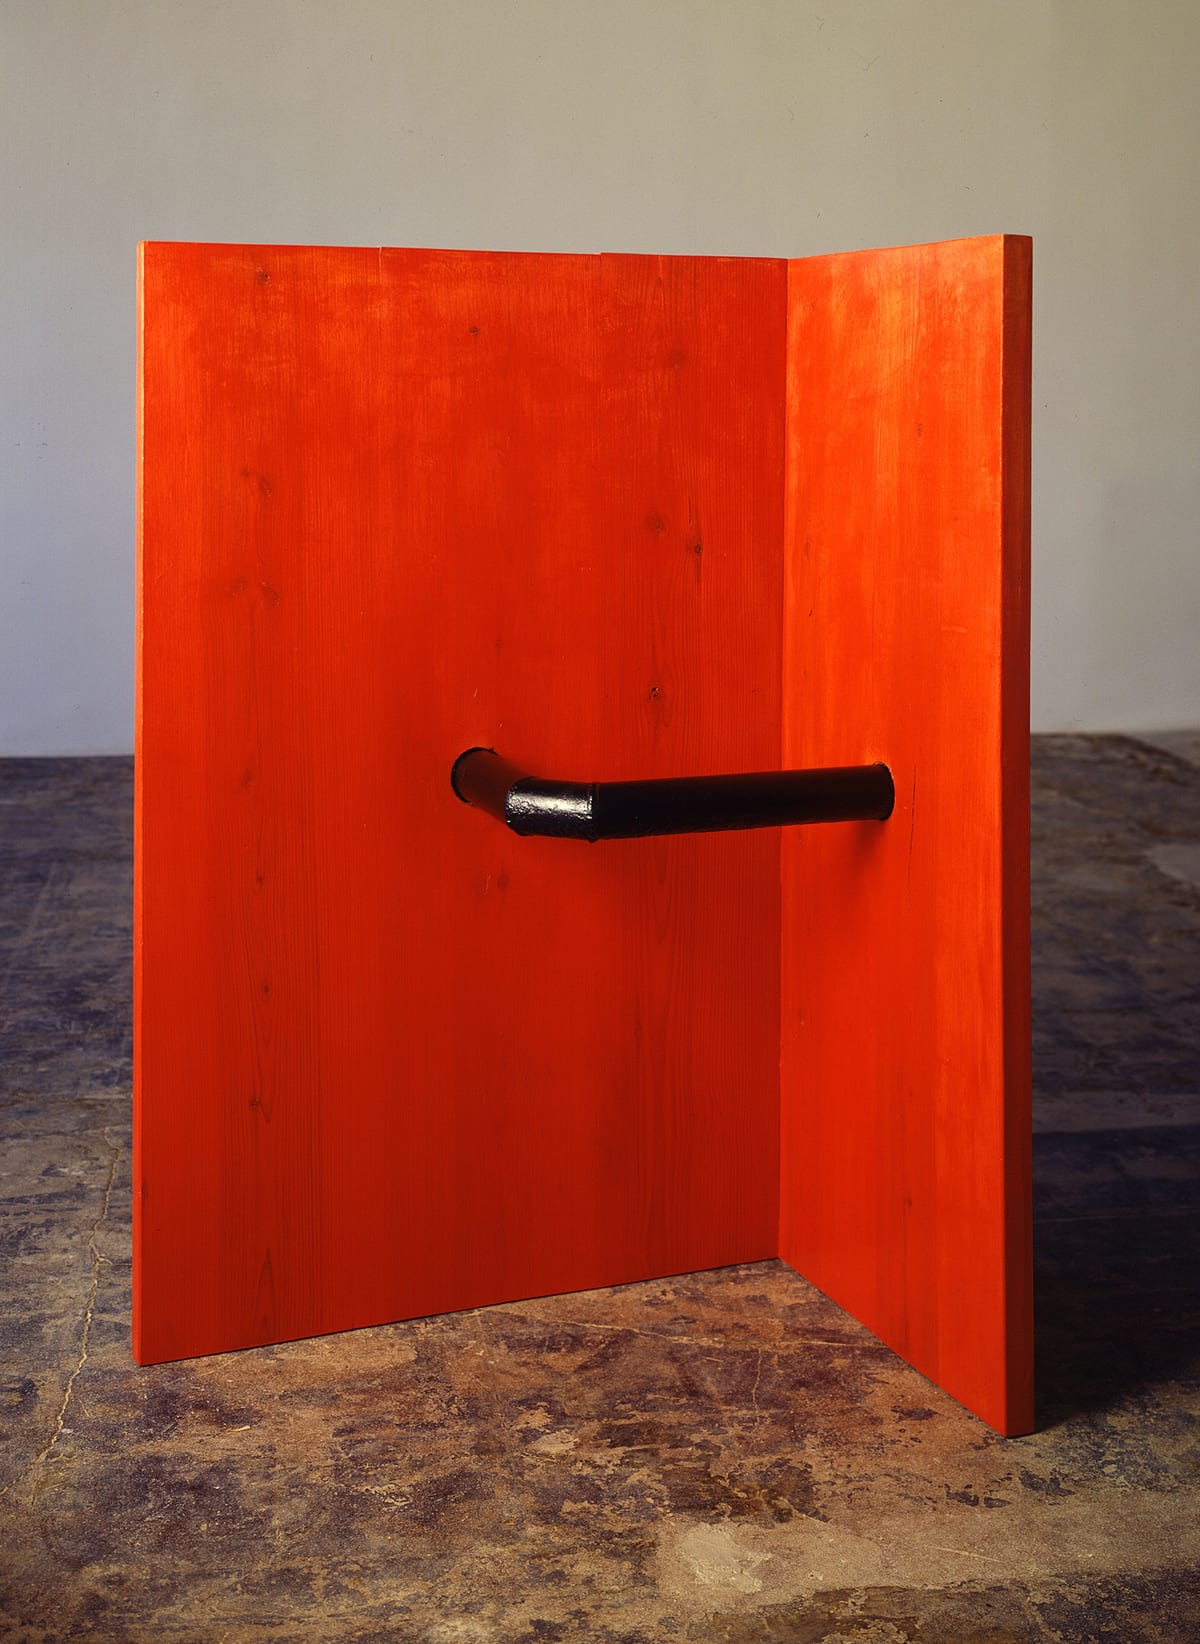 The Power of Inclusion in Donald Judd's Art: Observations by ... on